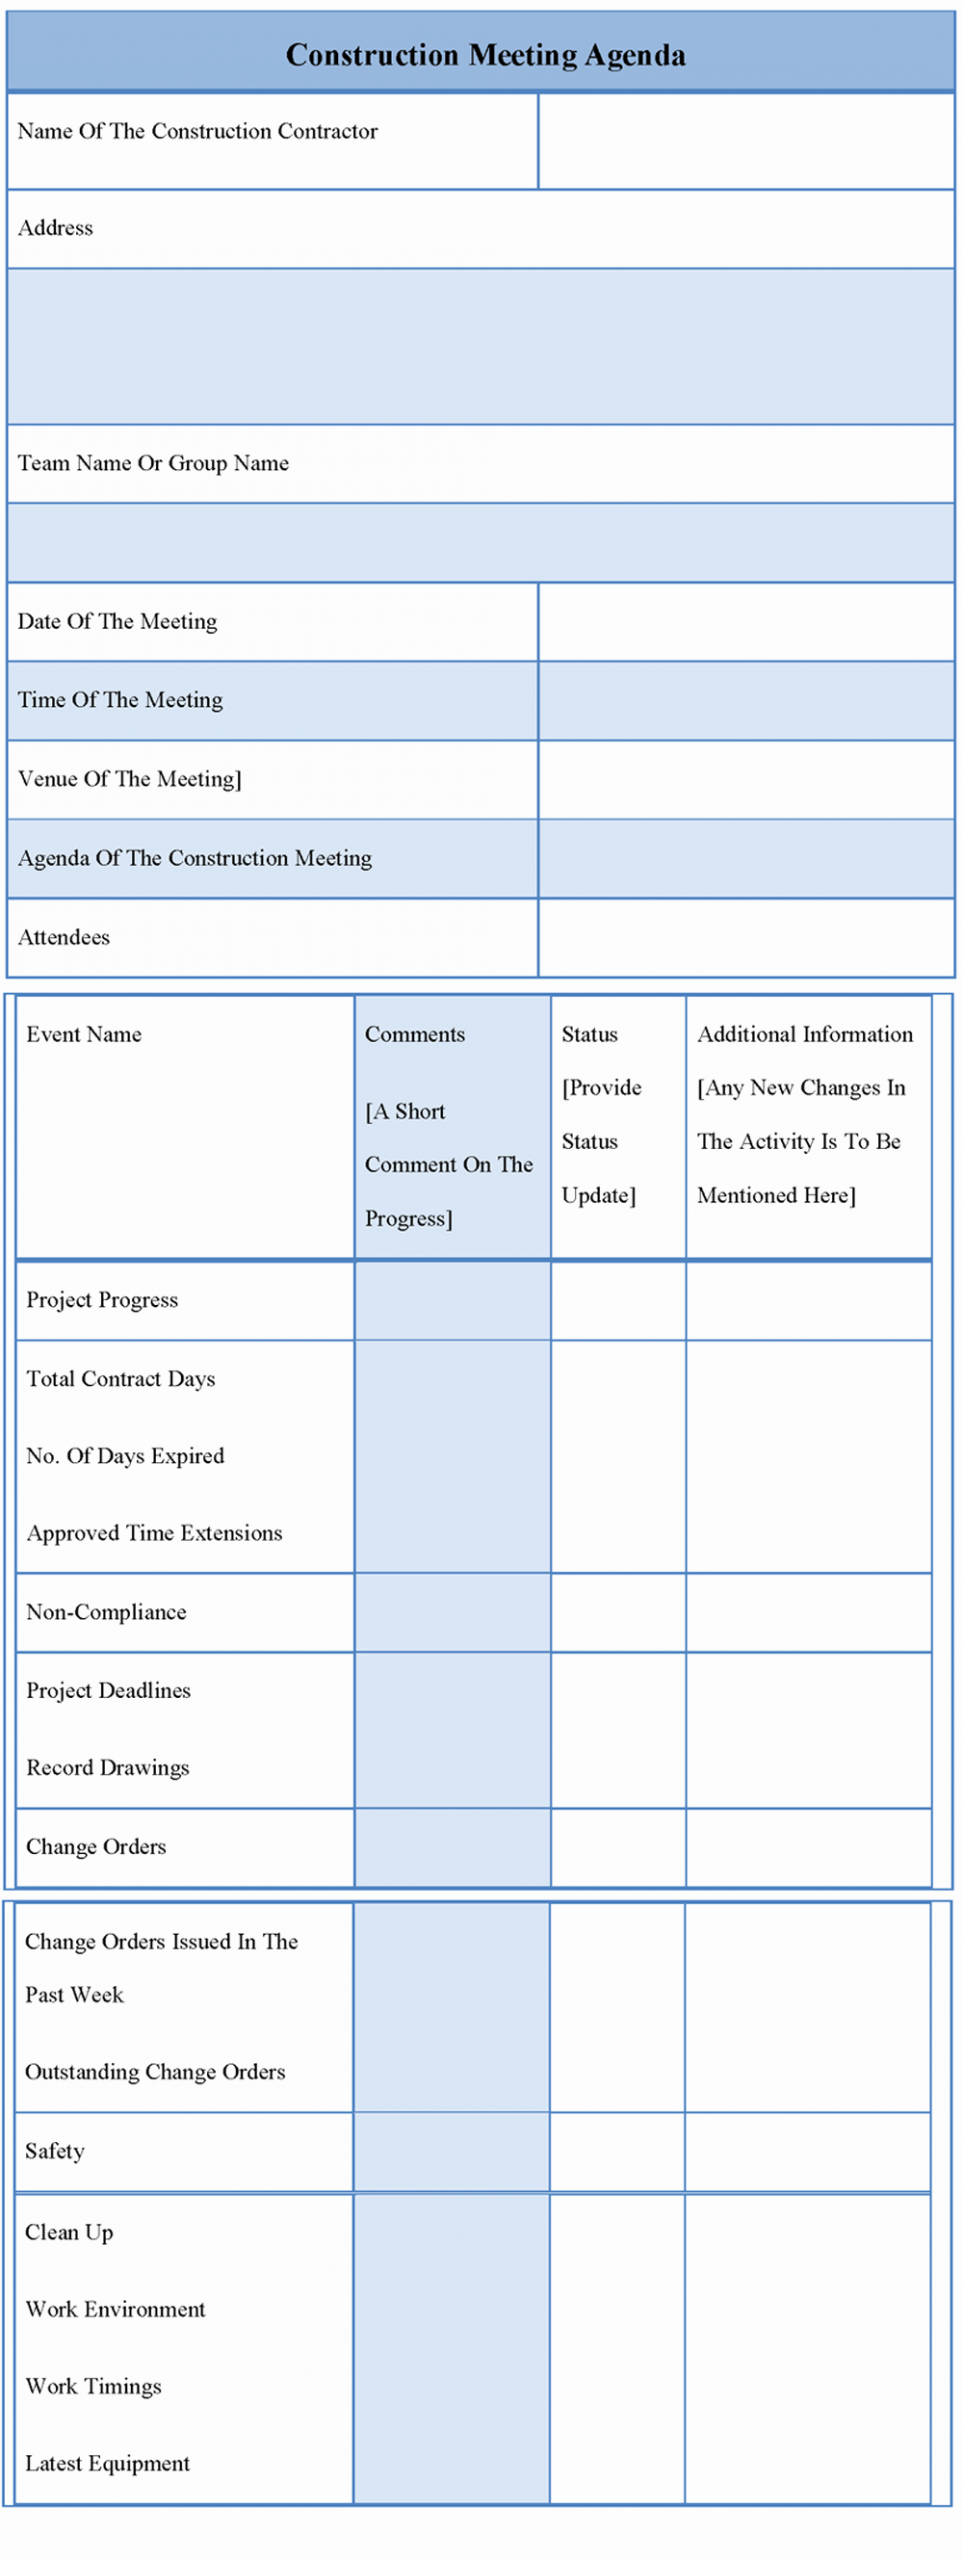 Construction Project Meeting Minutes Template Beautiful Agenda Template for Construction Meeting Example Of